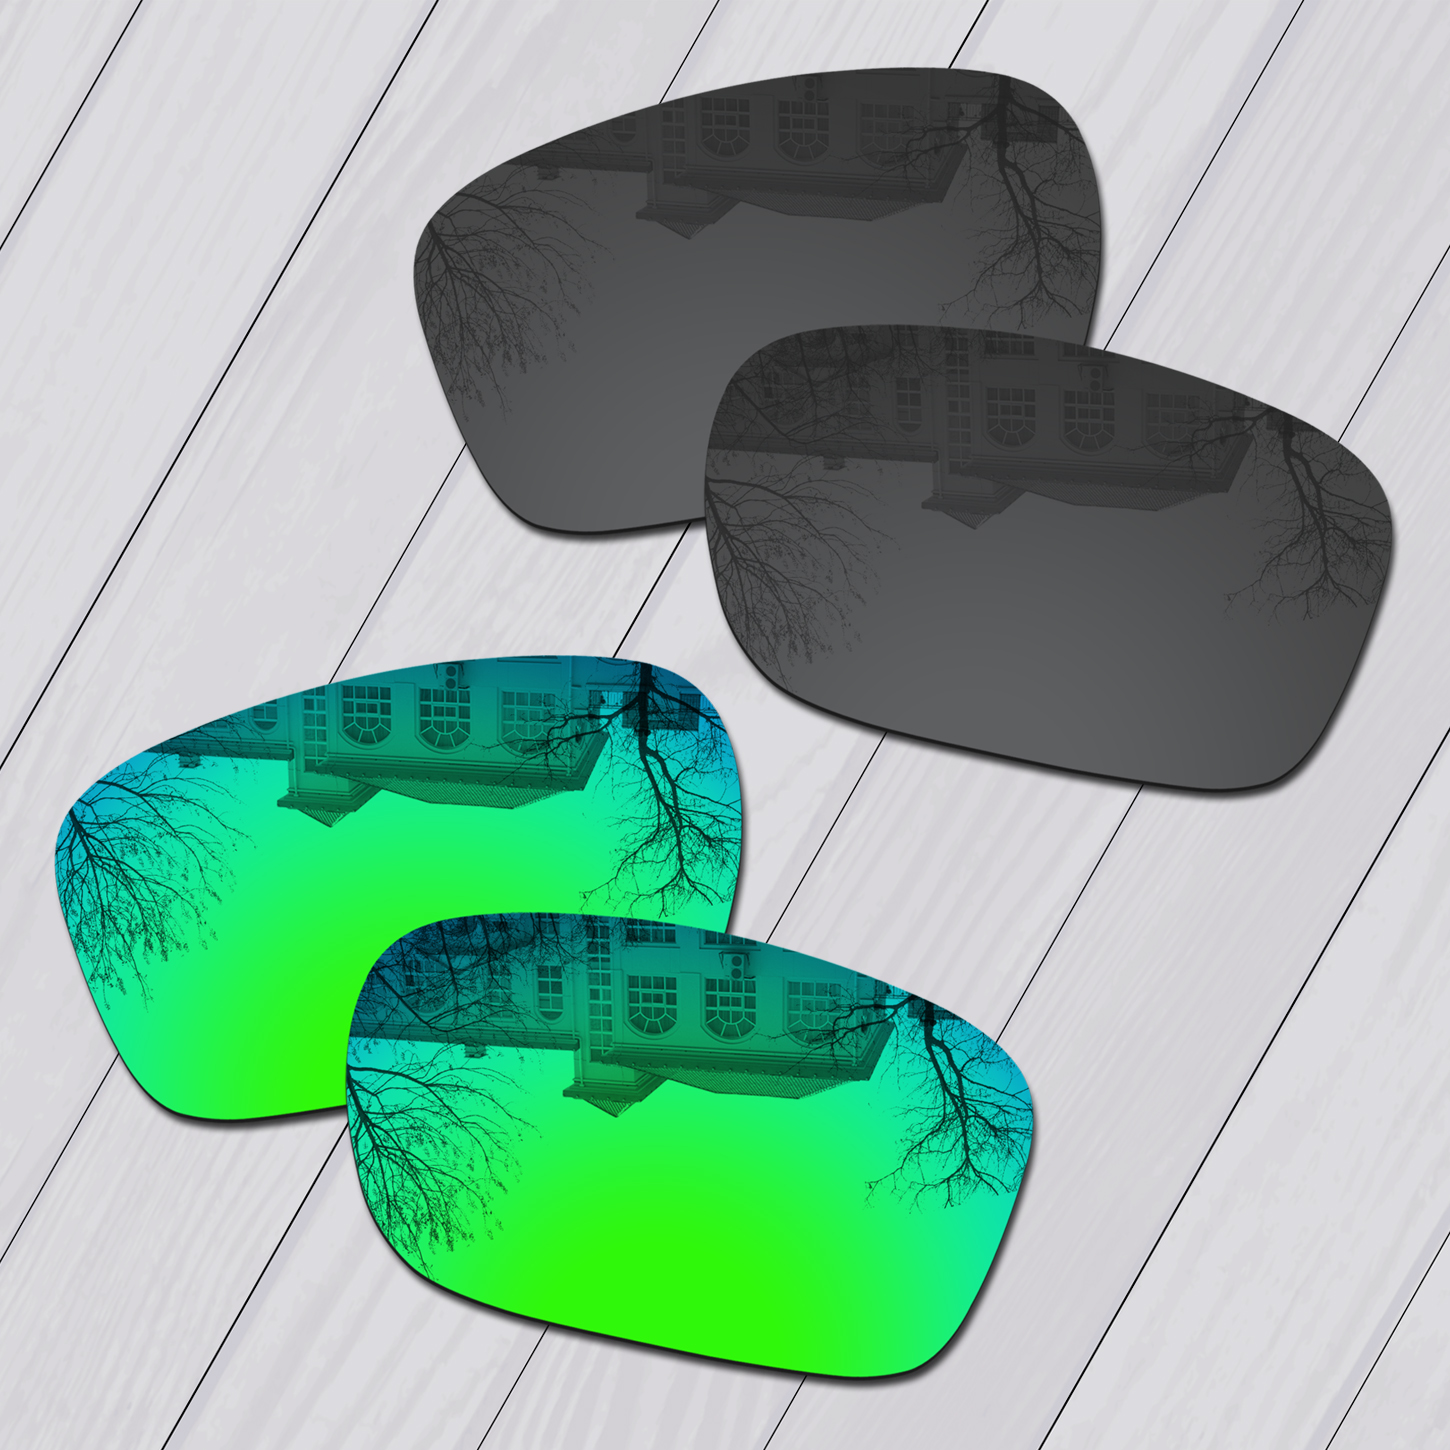 E.O.S 2 Pairs Black & Emerald Green Polycarbonate Replacement Lenses for Oakley Holbrook Metal OO4123 Sunglasses